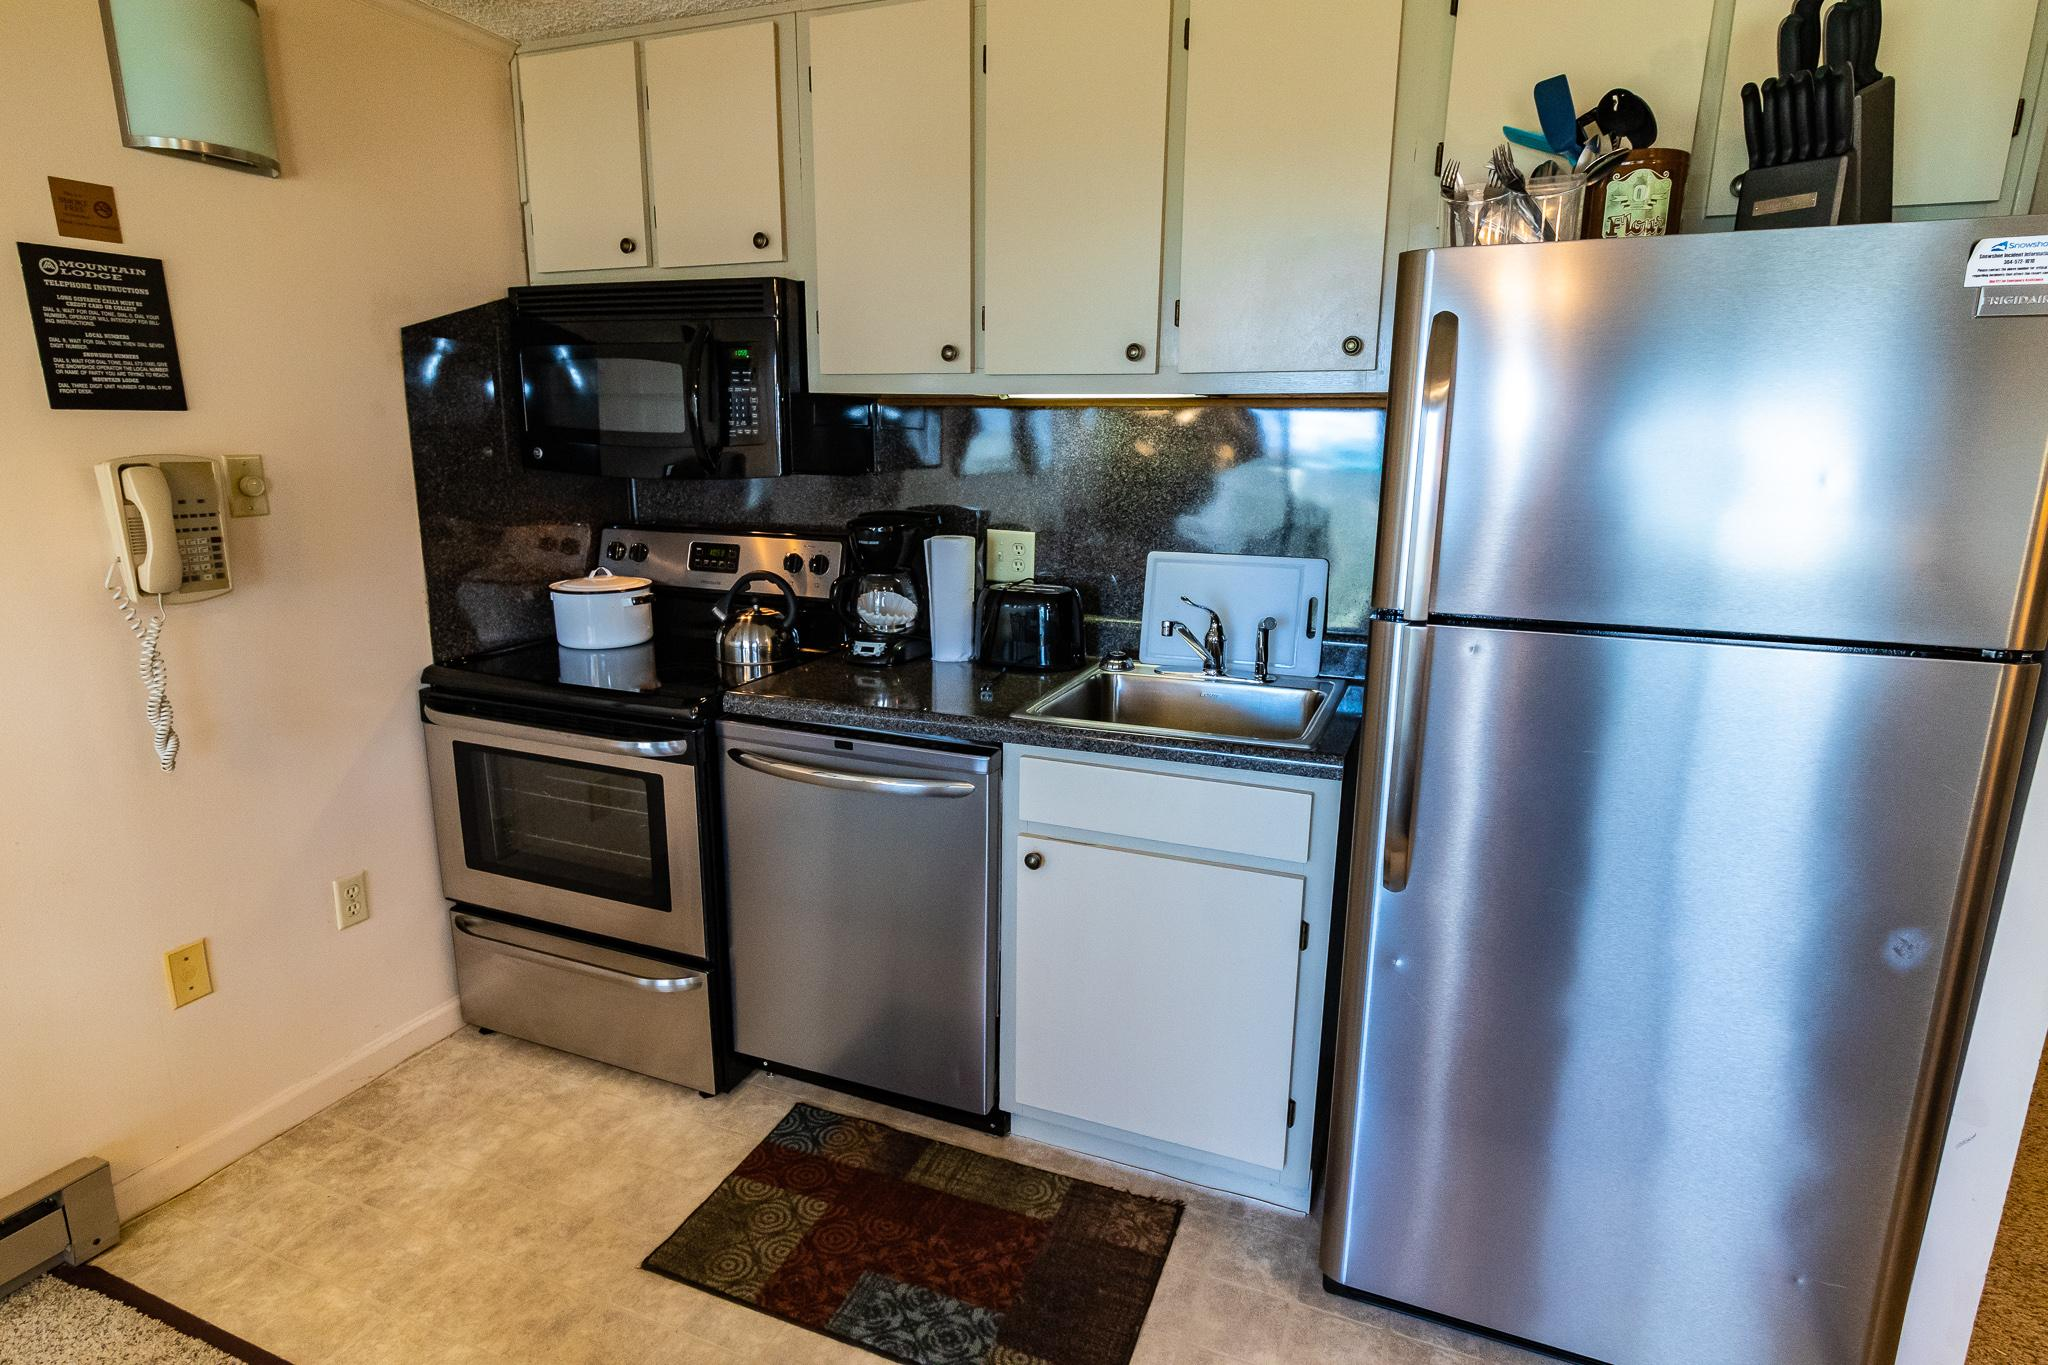 Fully-equipped kitchen with stainless steel appliance, pots, pans, utensils!